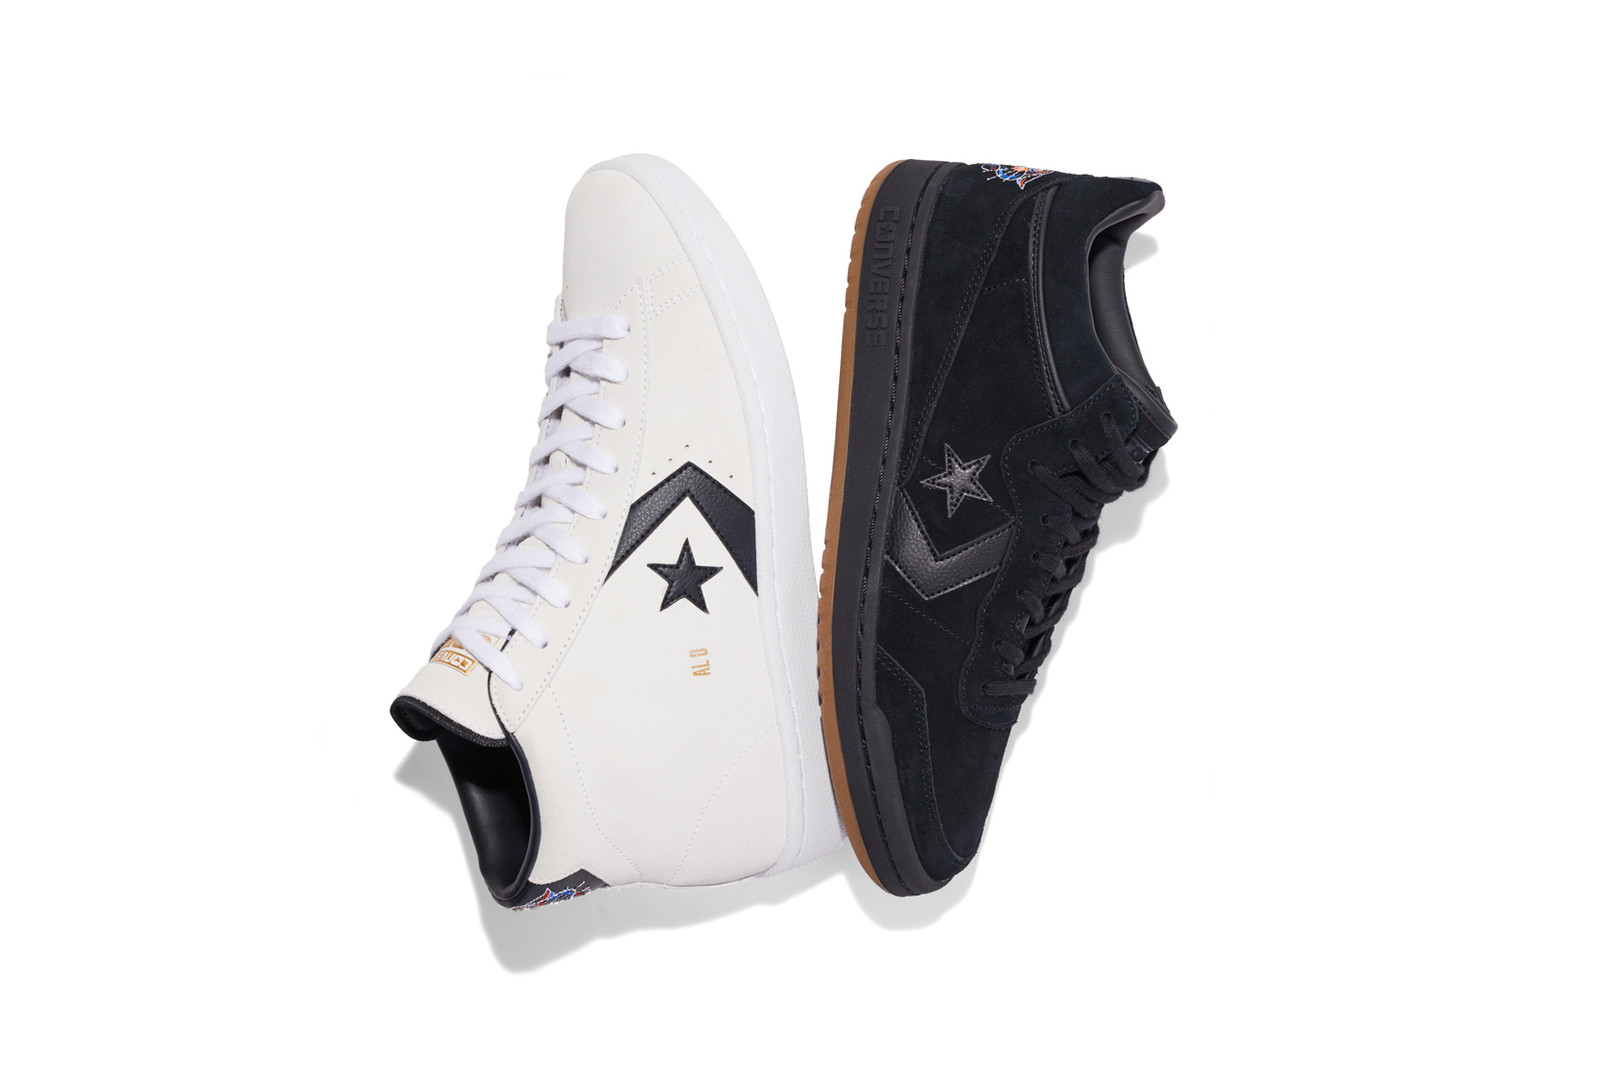 Pro Skater Al Davis Court Pack Collection Pro Leather Fastbreak Mid sneakers converse cons skateboarding